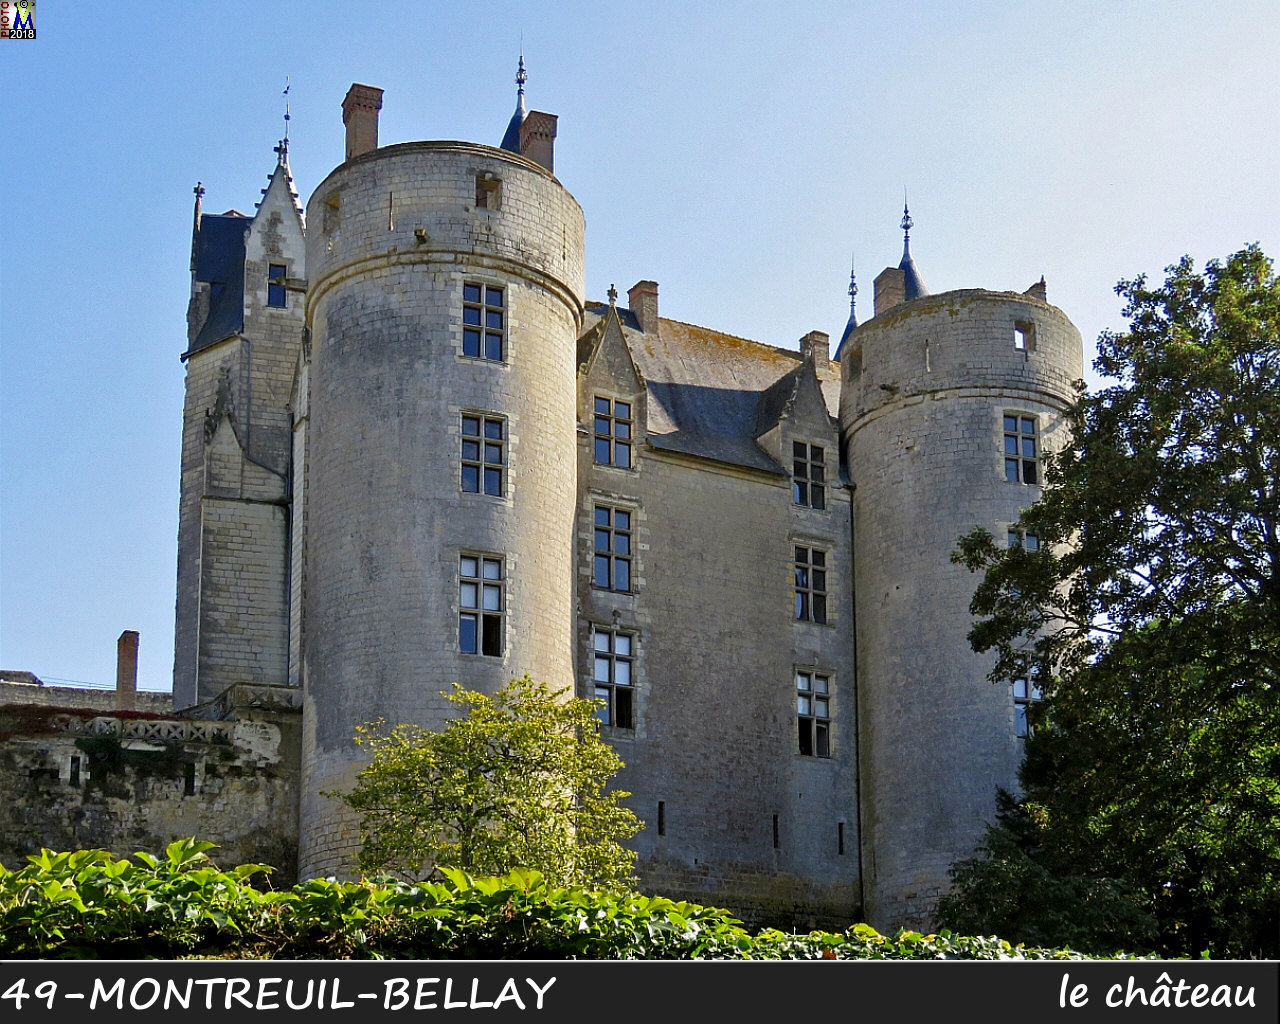 49MONTREUIL-BELLAY_chateau_1026.jpg